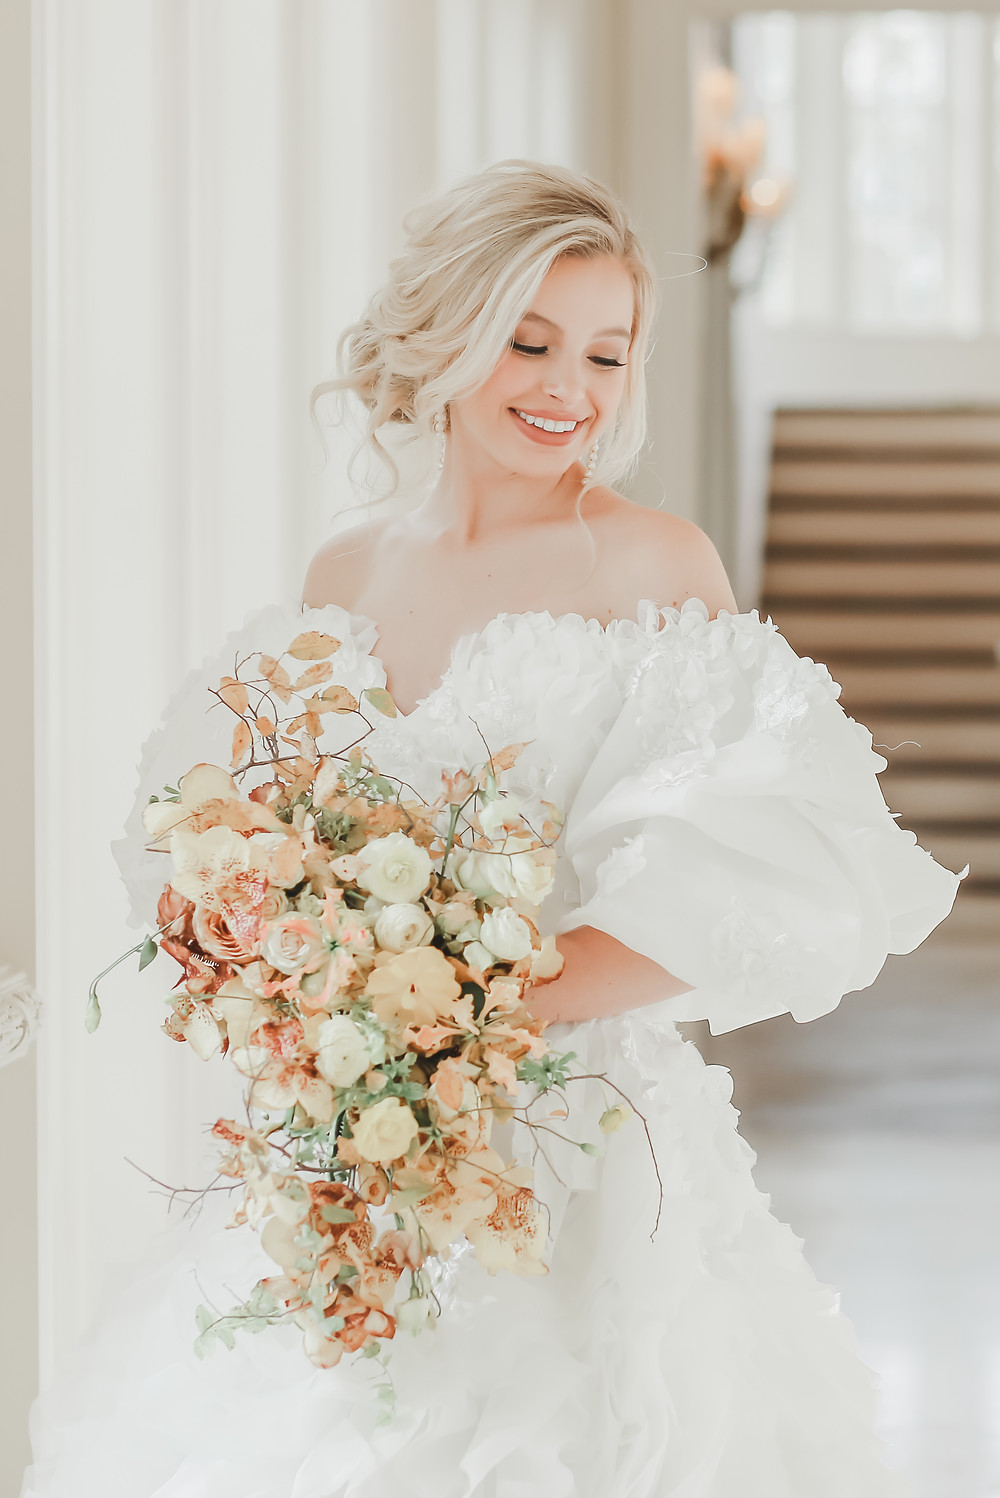 Questions About How Coronavirus Could Affect Your Wedding?